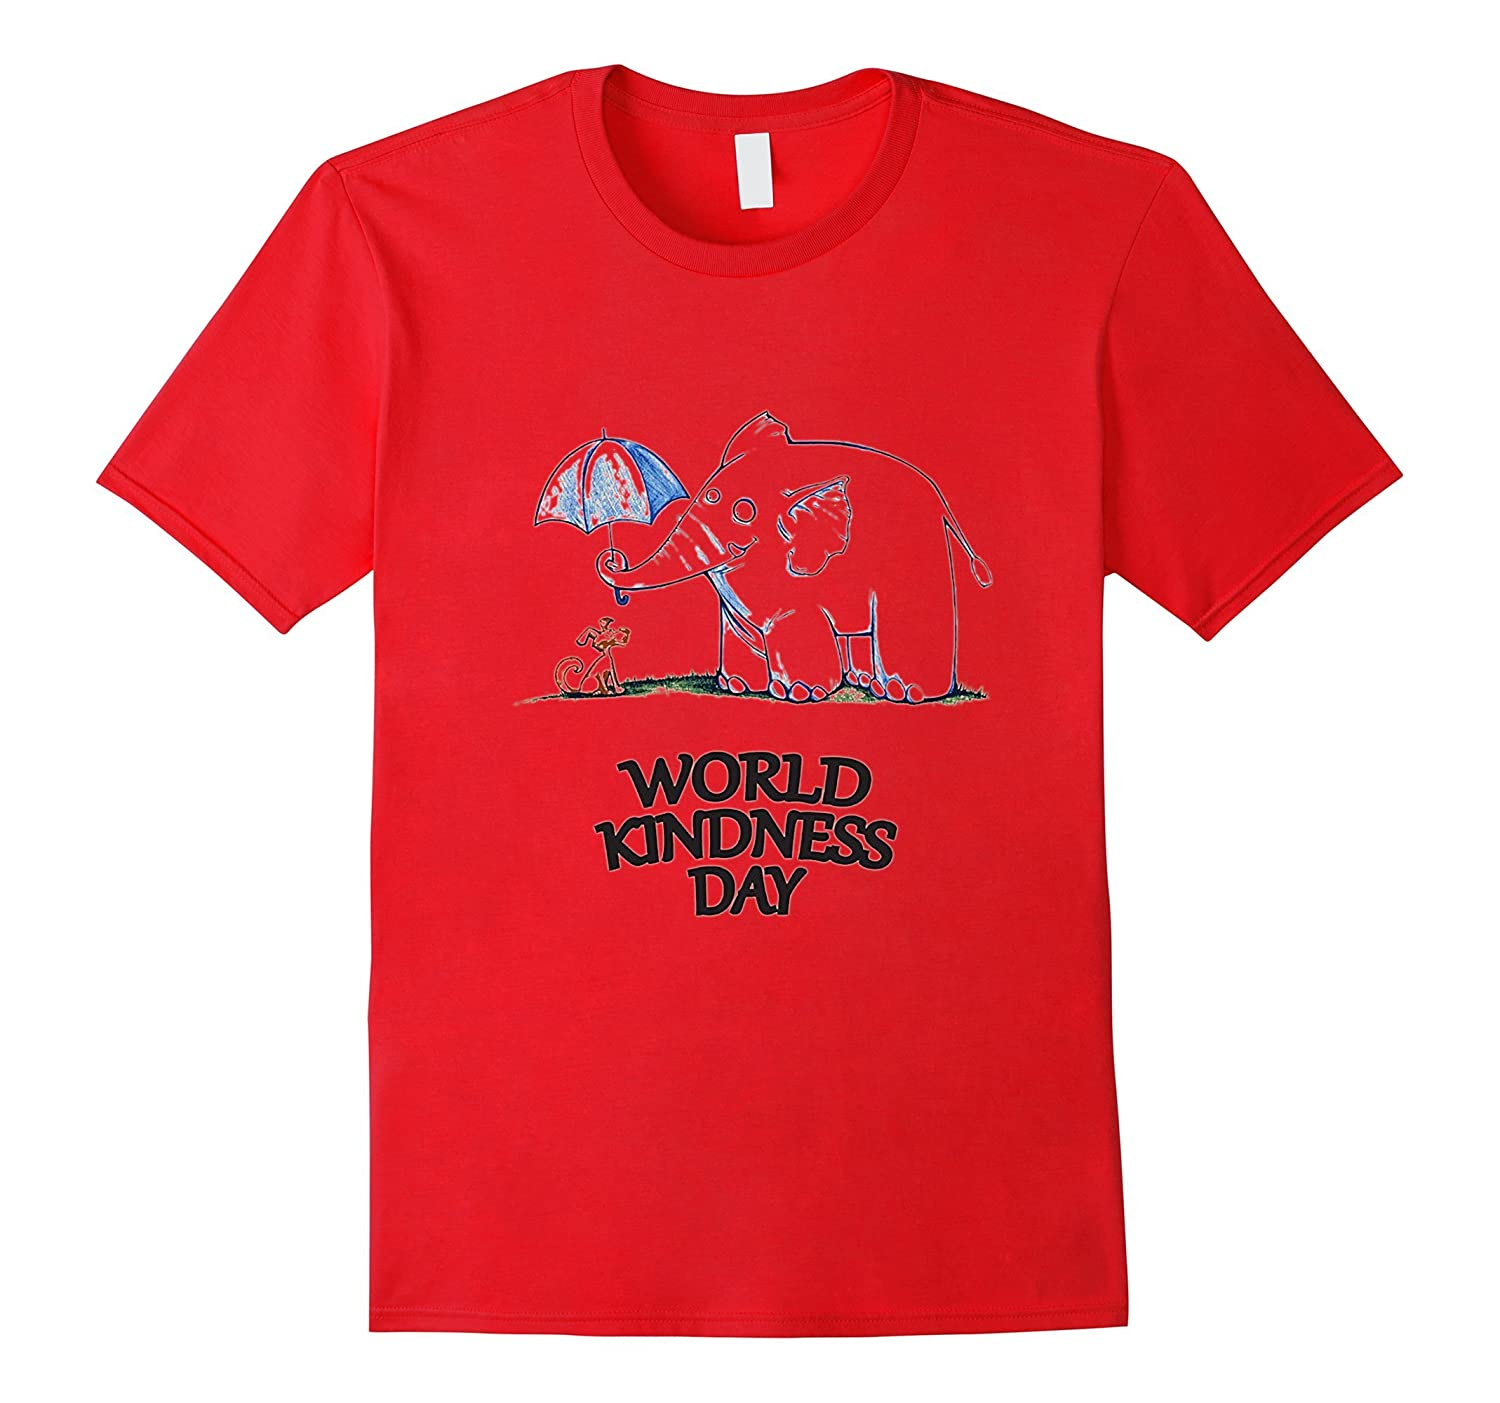 Kindness Shirt - Colors of Kindness-RT